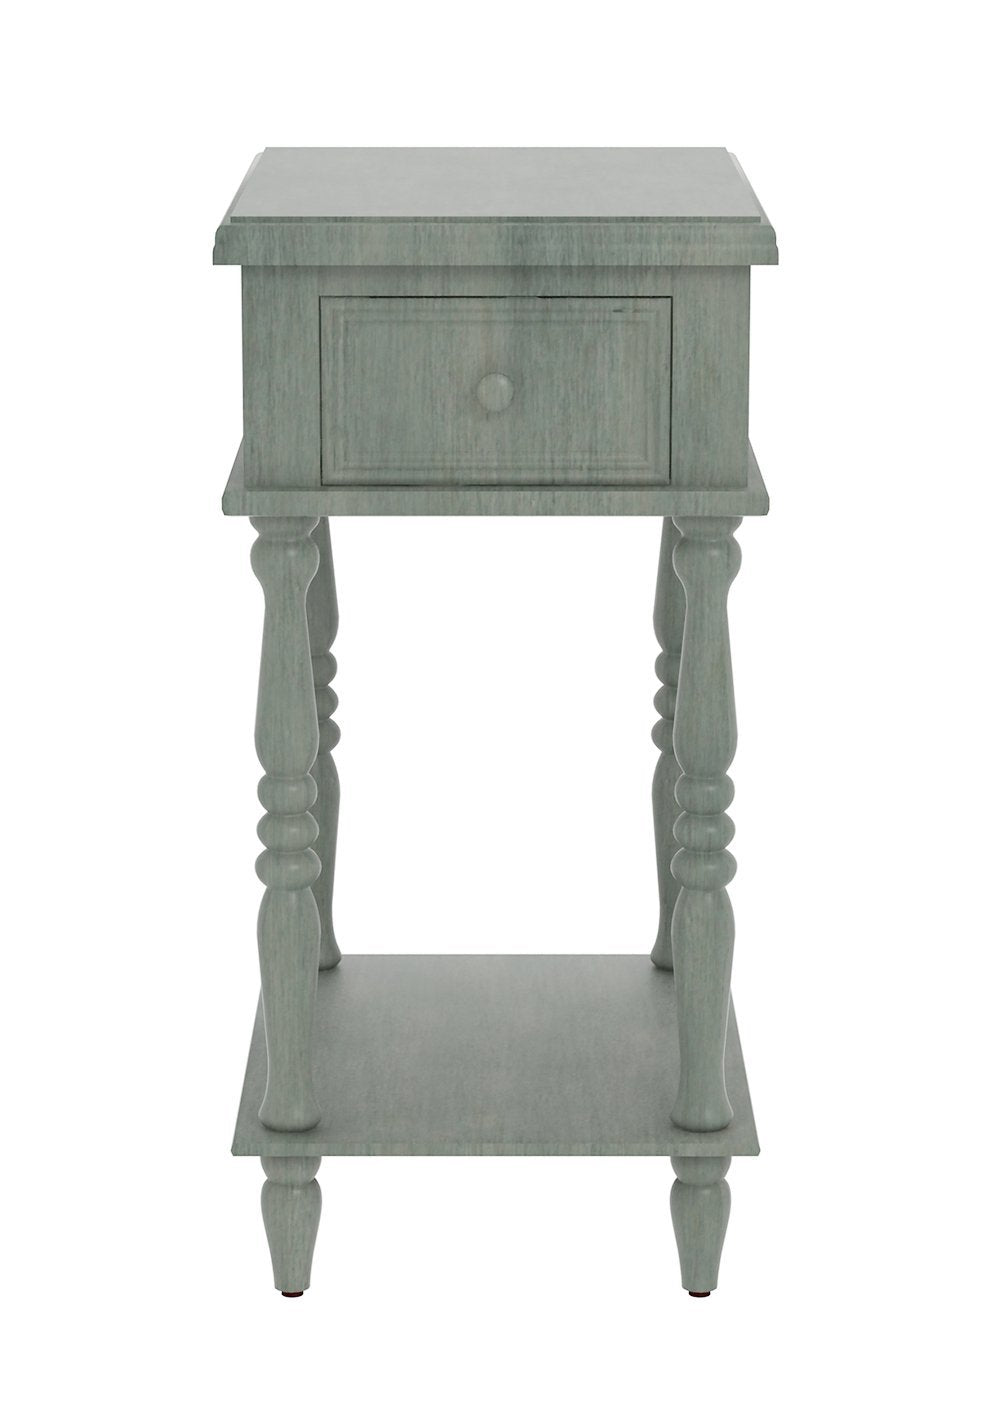 adams accent end table with drawer inch tall – urbanest - adams accent end table with drawer inch tall